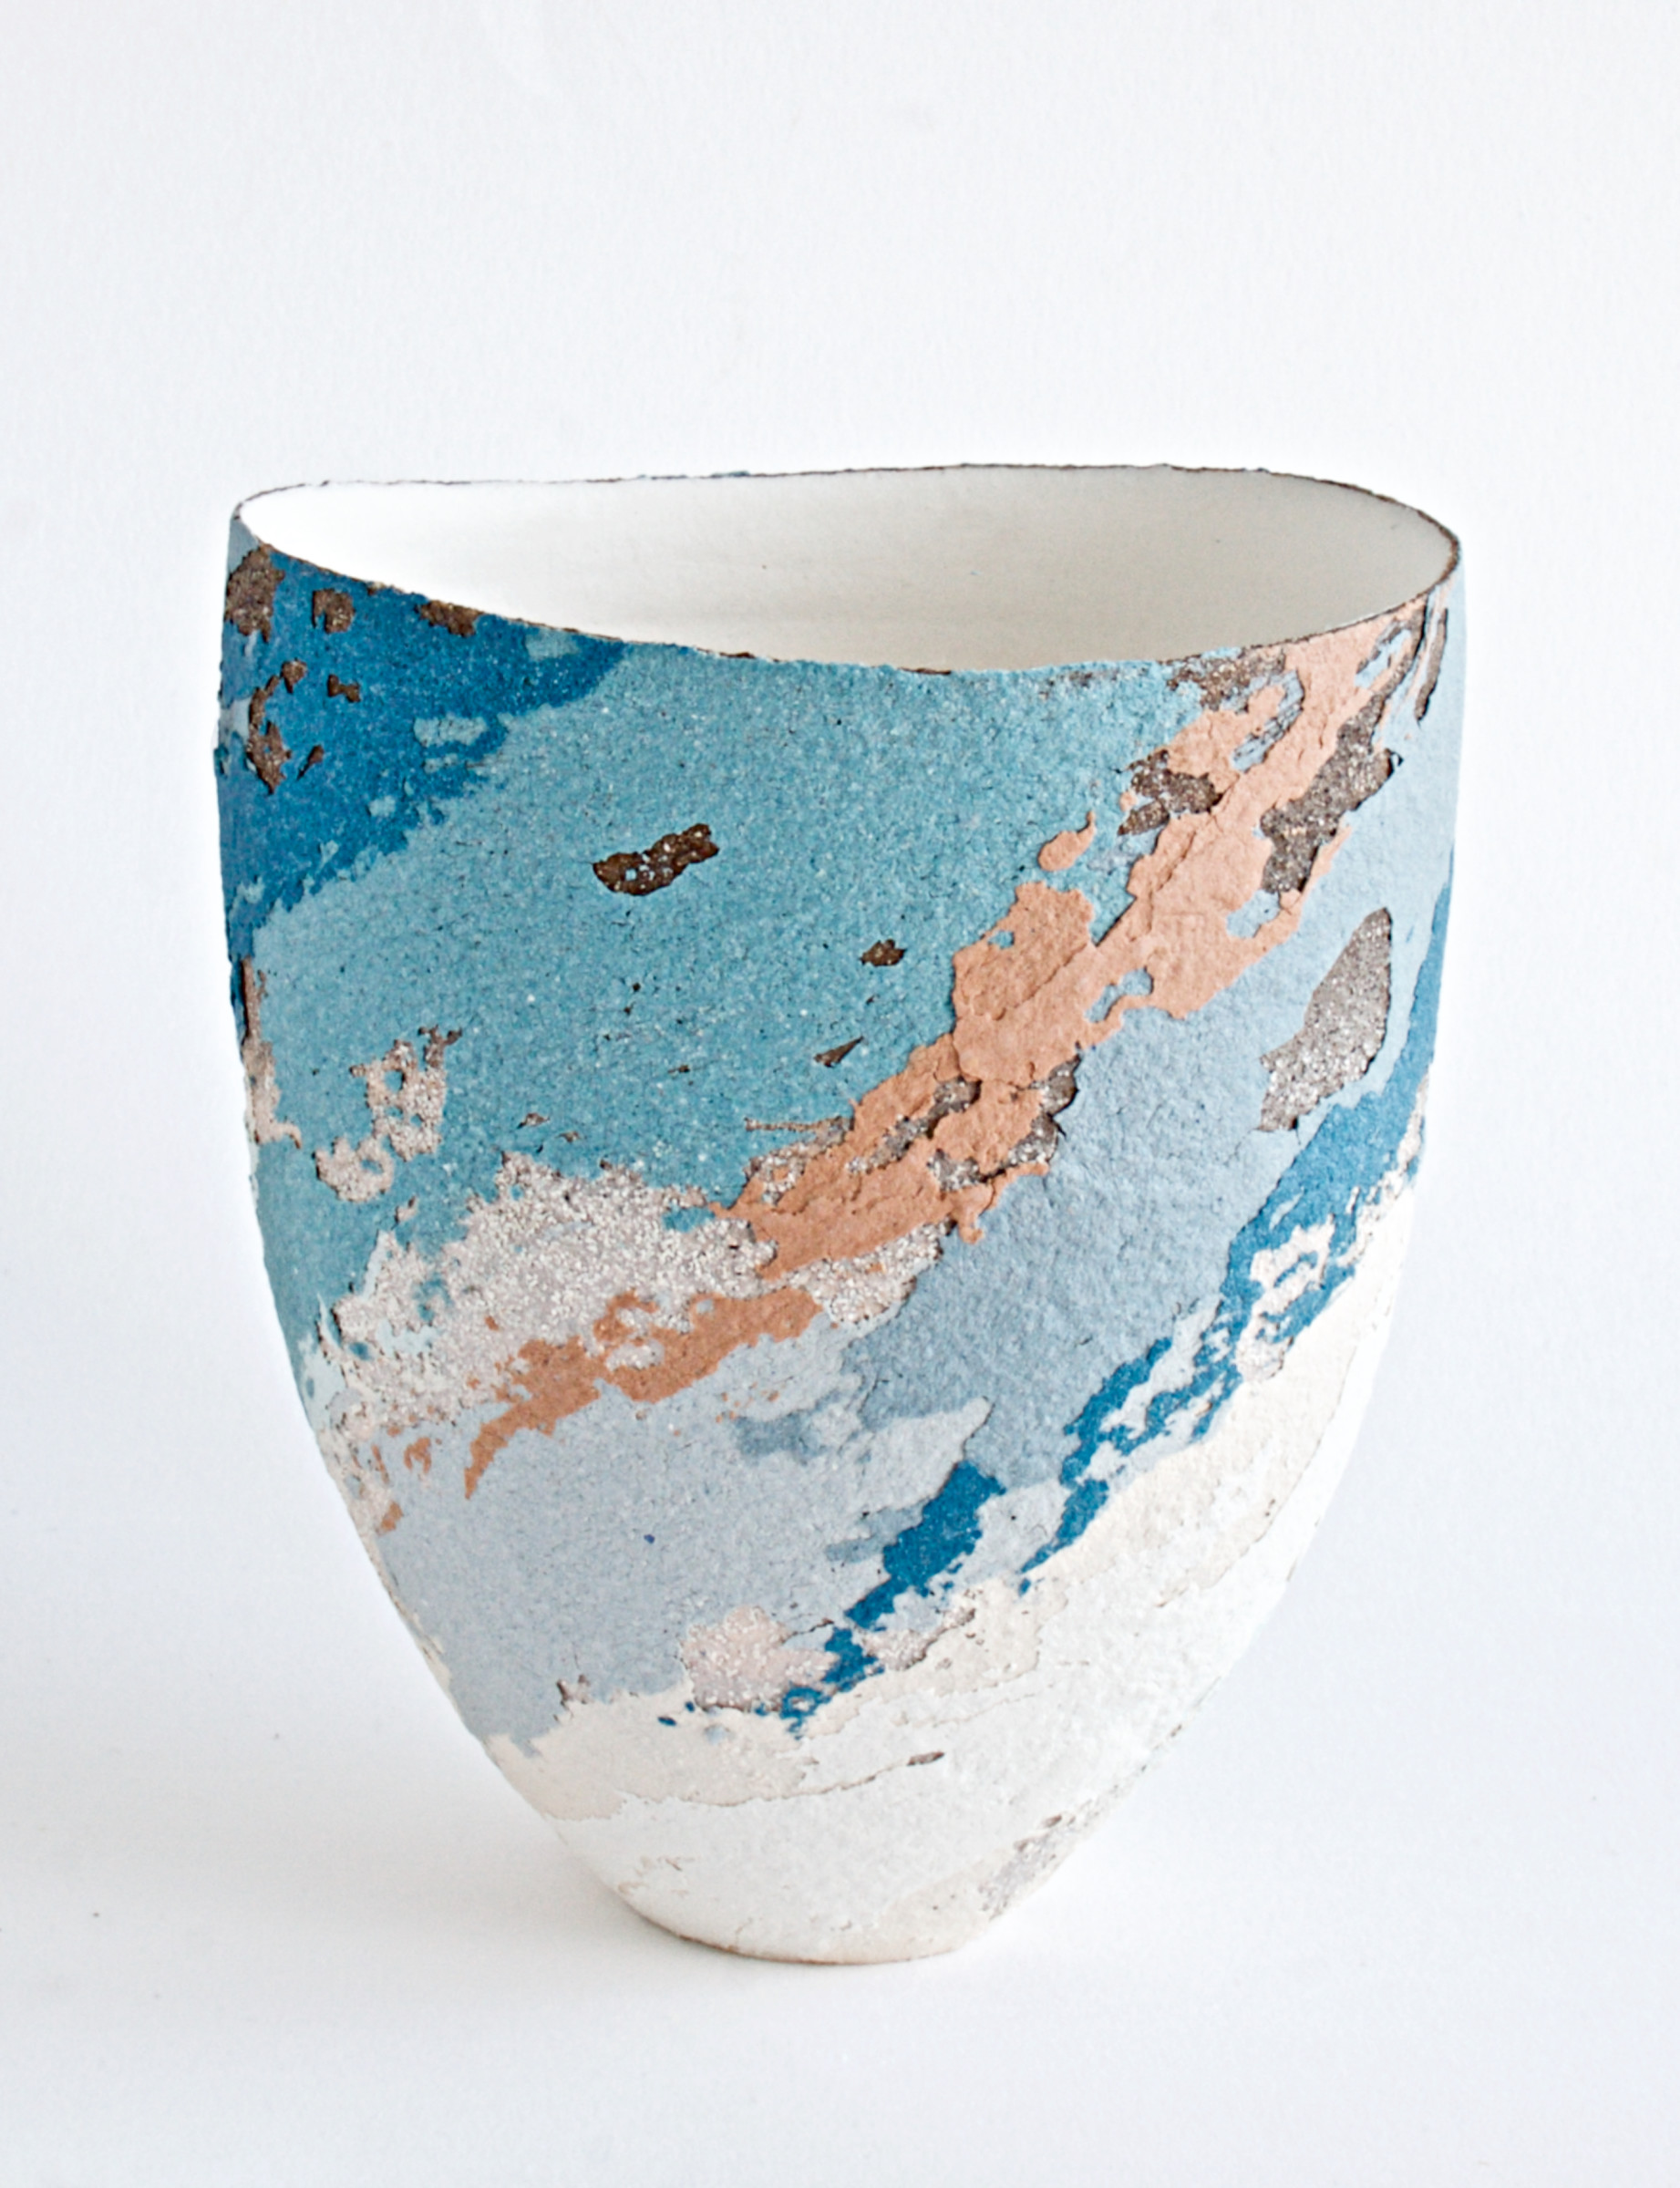 "<span class=""link fancybox-details-link""><a href=""/artists/79-clare-conrad/works/6938-clare-conrad-vessel-scooped-rim-2020/"">View Detail Page</a></span><div class=""artist""><strong>Clare Conrad</strong></div> <div class=""title""><em>Vessel, scooped rim</em>, 2020</div> <div class=""medium"">Stoneware</div> <div class=""dimensions"">h. 14 cm </div><div class=""price"">£220.00</div><div class=""copyright_line"">Copyright The Artist</div>"